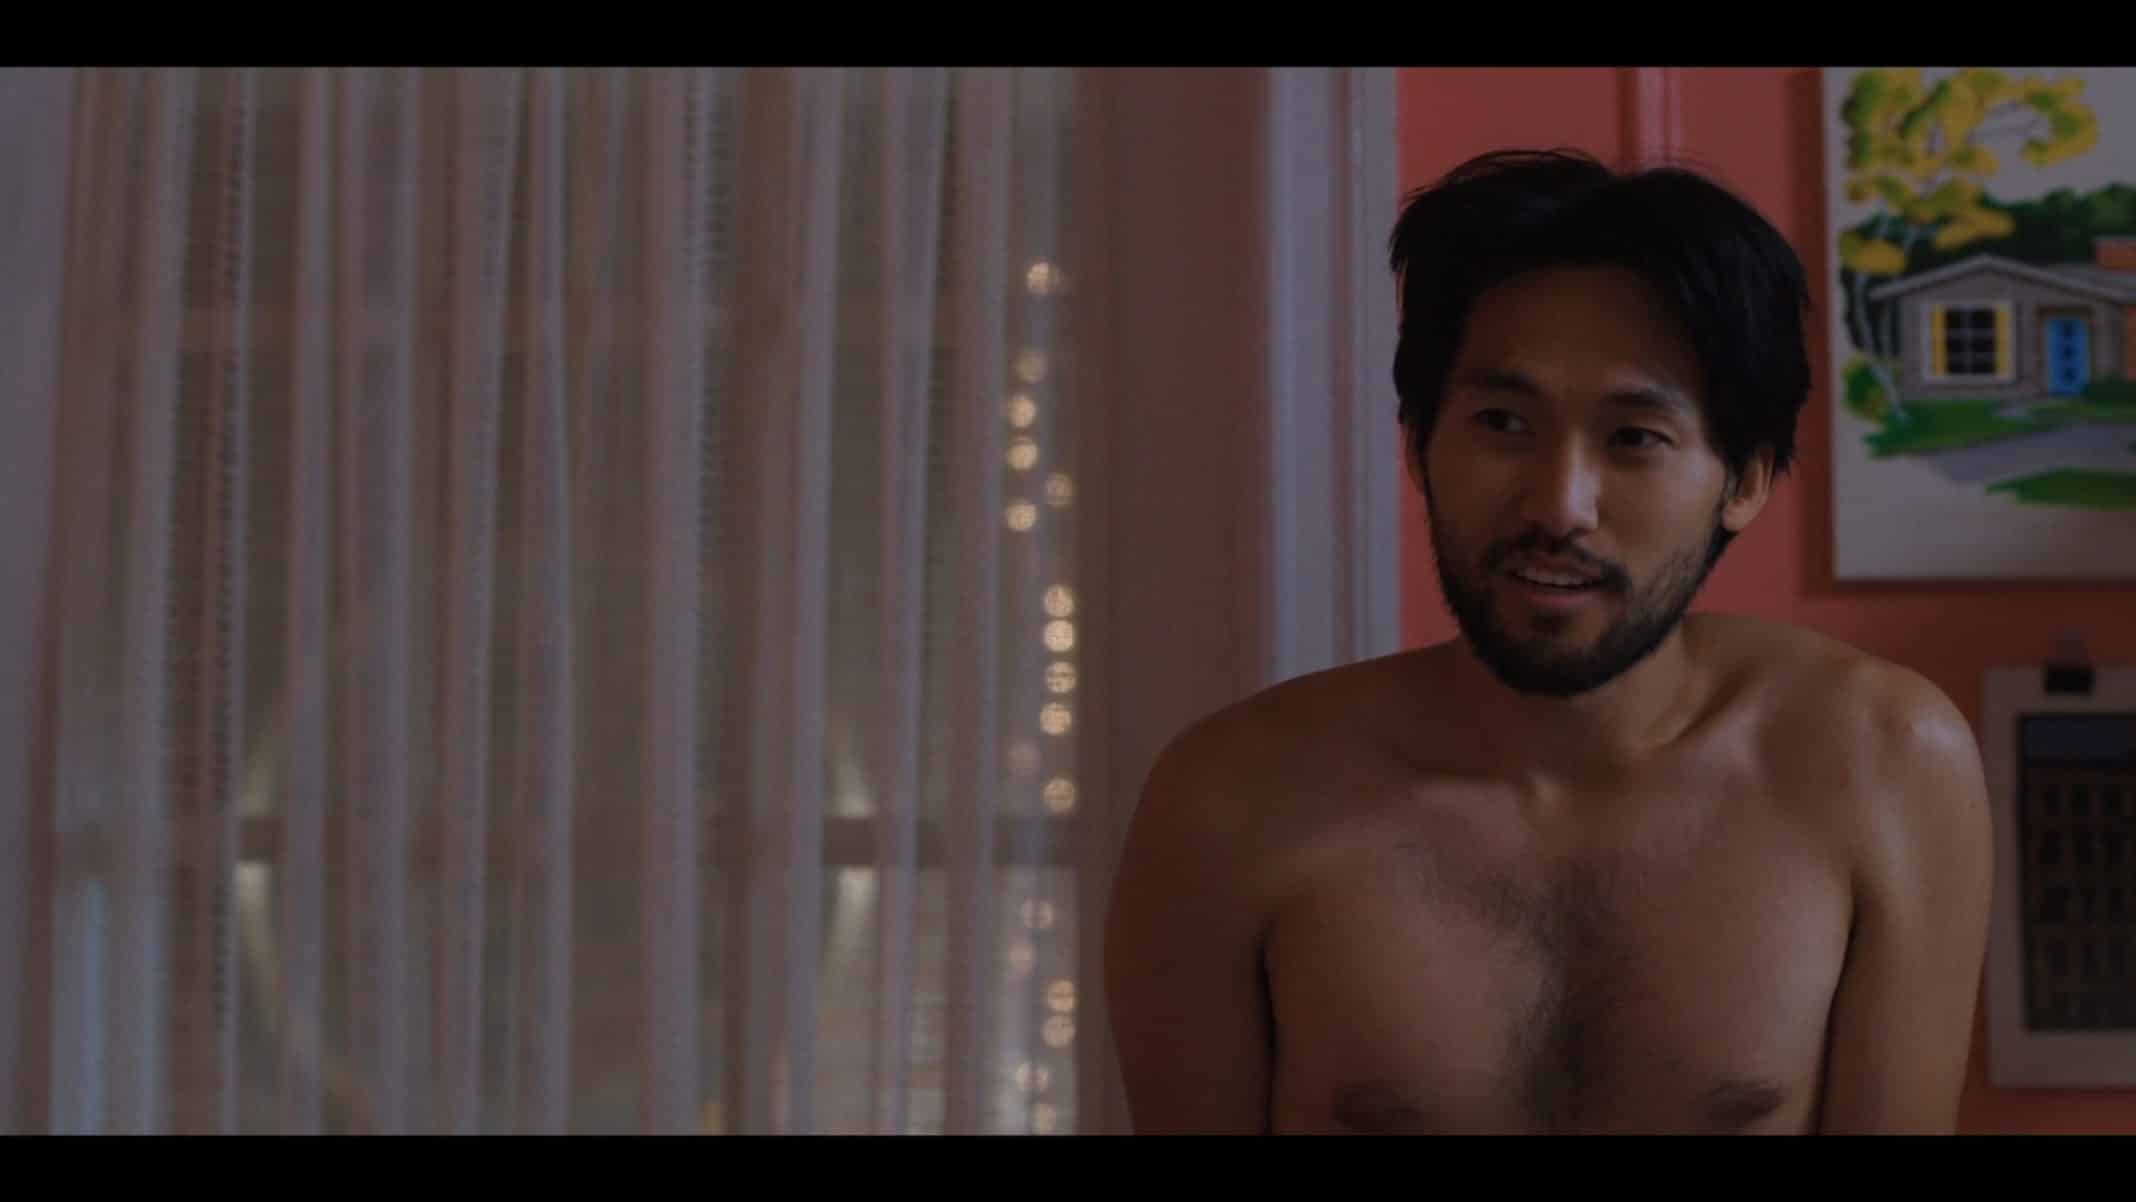 Augie (Jin Ha) with his shirt off.